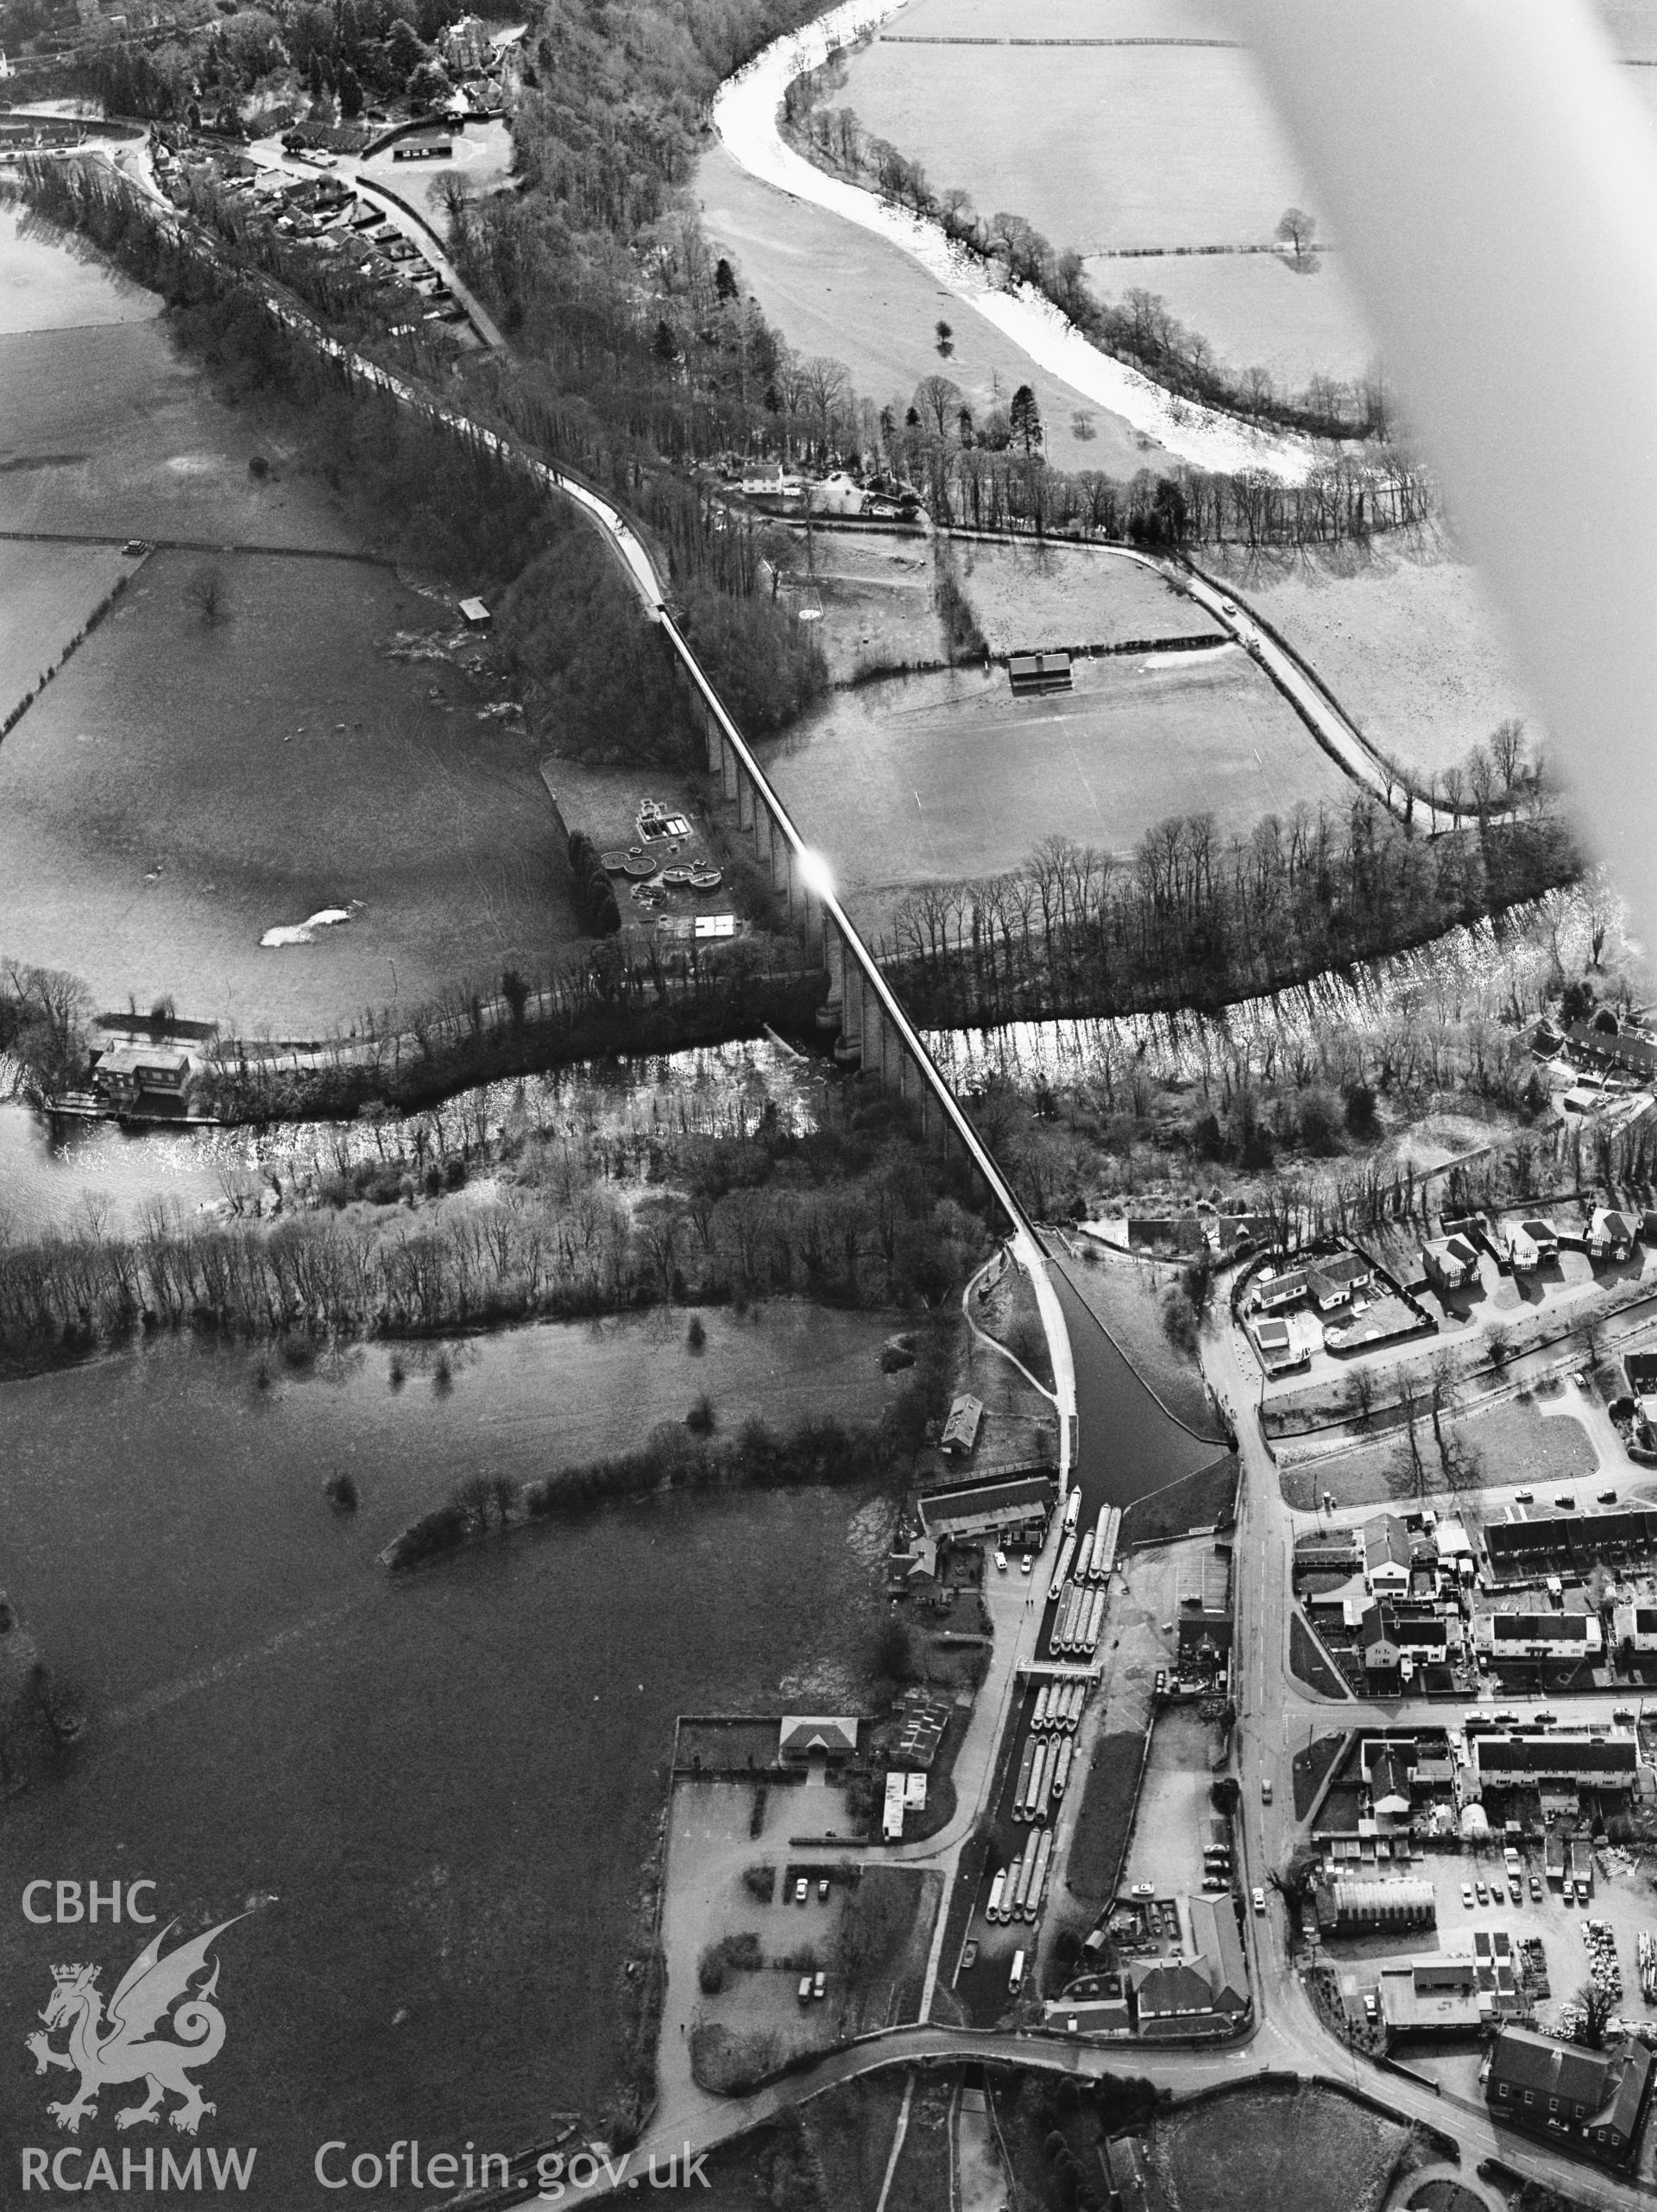 RCAHMW Black and white oblique aerial photograph of Pontcysyllte Aqueduct, 1993, by T.G. Driver.